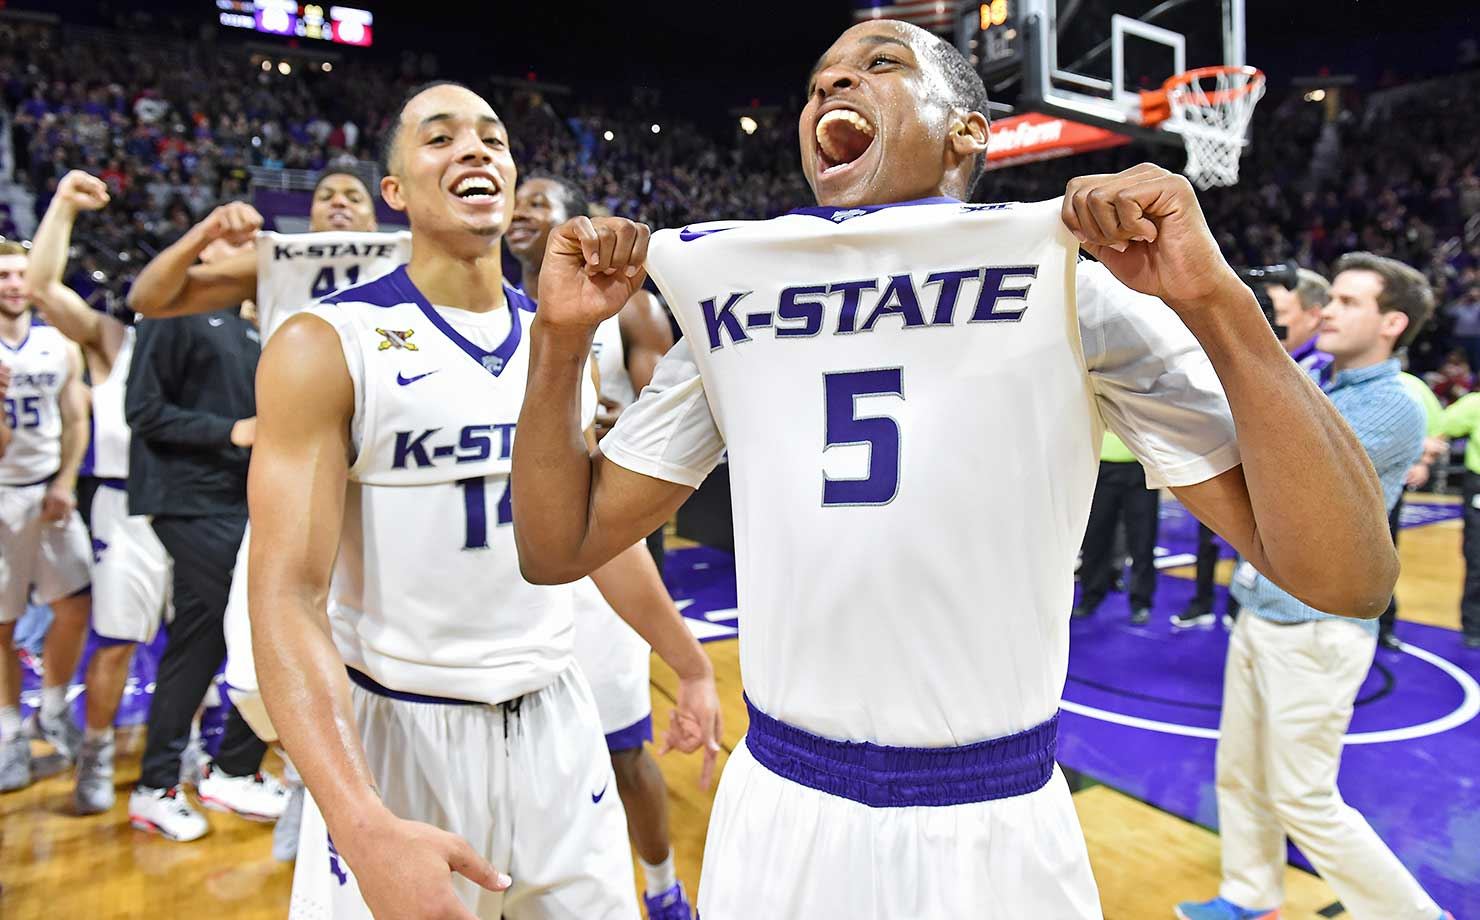 Berry Brown and Justin Edwards of Kansas State after defeating No. 1 ranked Oklahoma 80-69.